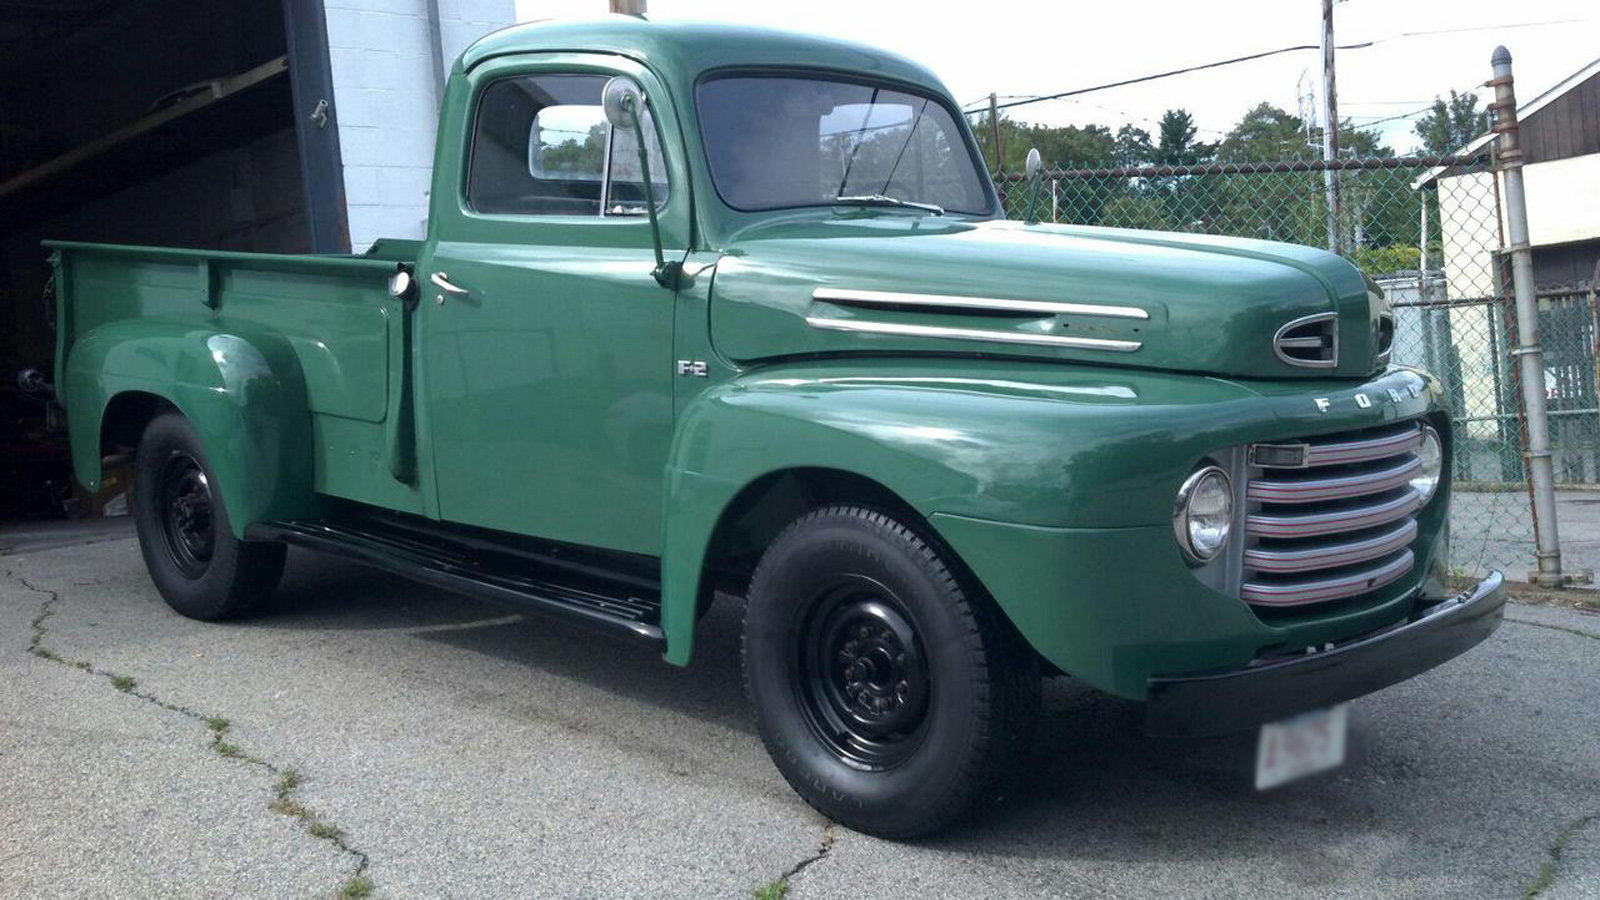 The 1948 F-2